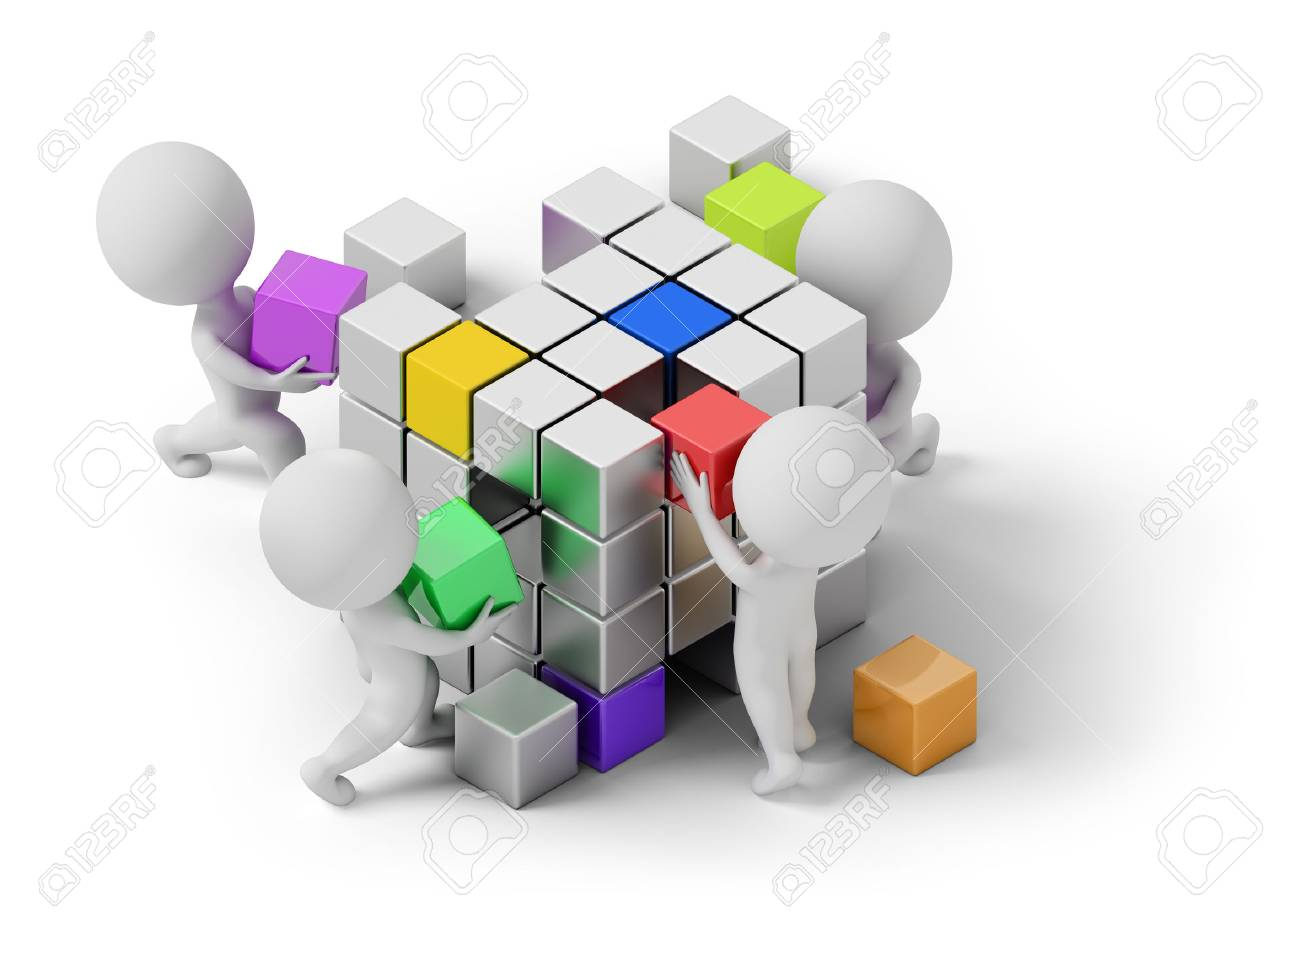 isometric people - concept of creating. 3d image. White background. Stock Photo - 69567600